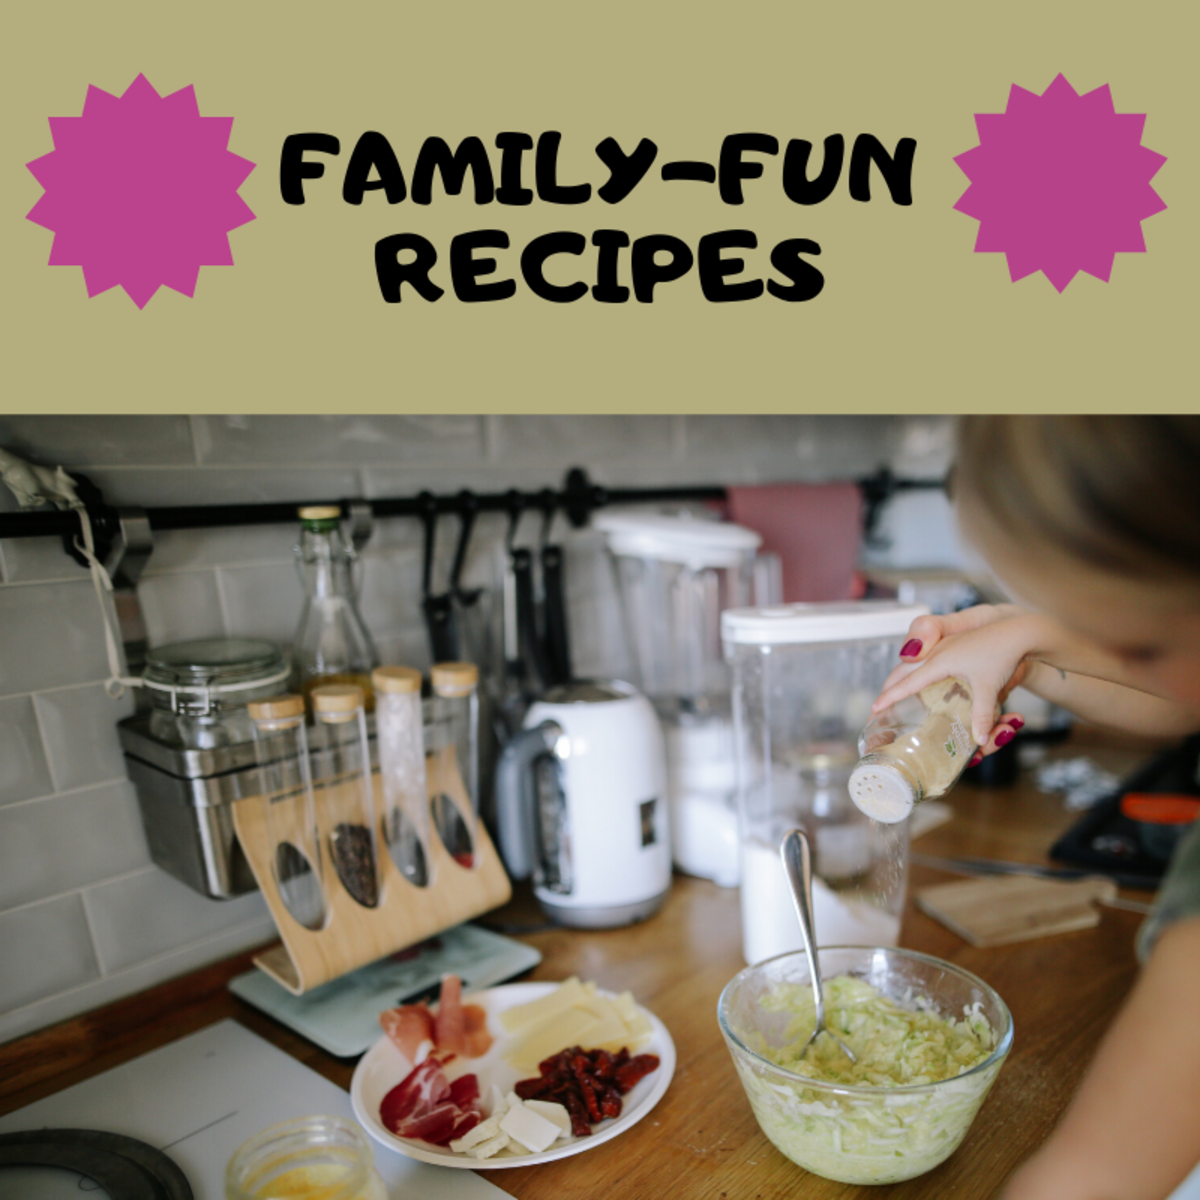 These recipes are fun for the whole family.